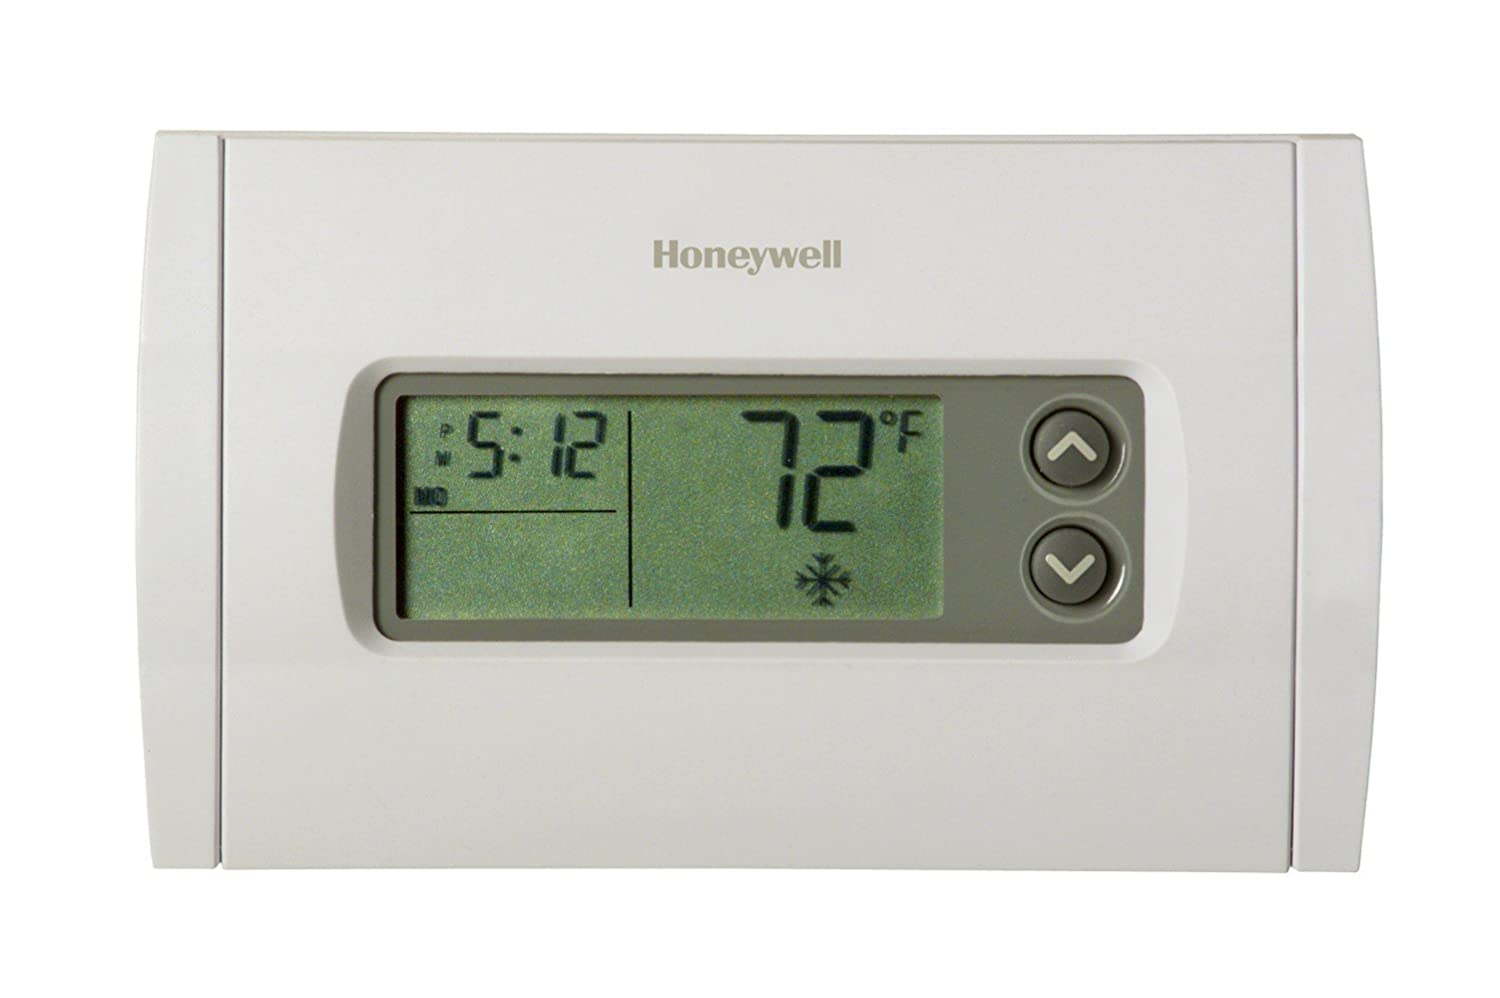 honeywell rth230b 5 2 day programmable thermostat building supplies rh amazon ca honeywell thermostat rth230b manual download honeywell thermostat rth230b manual